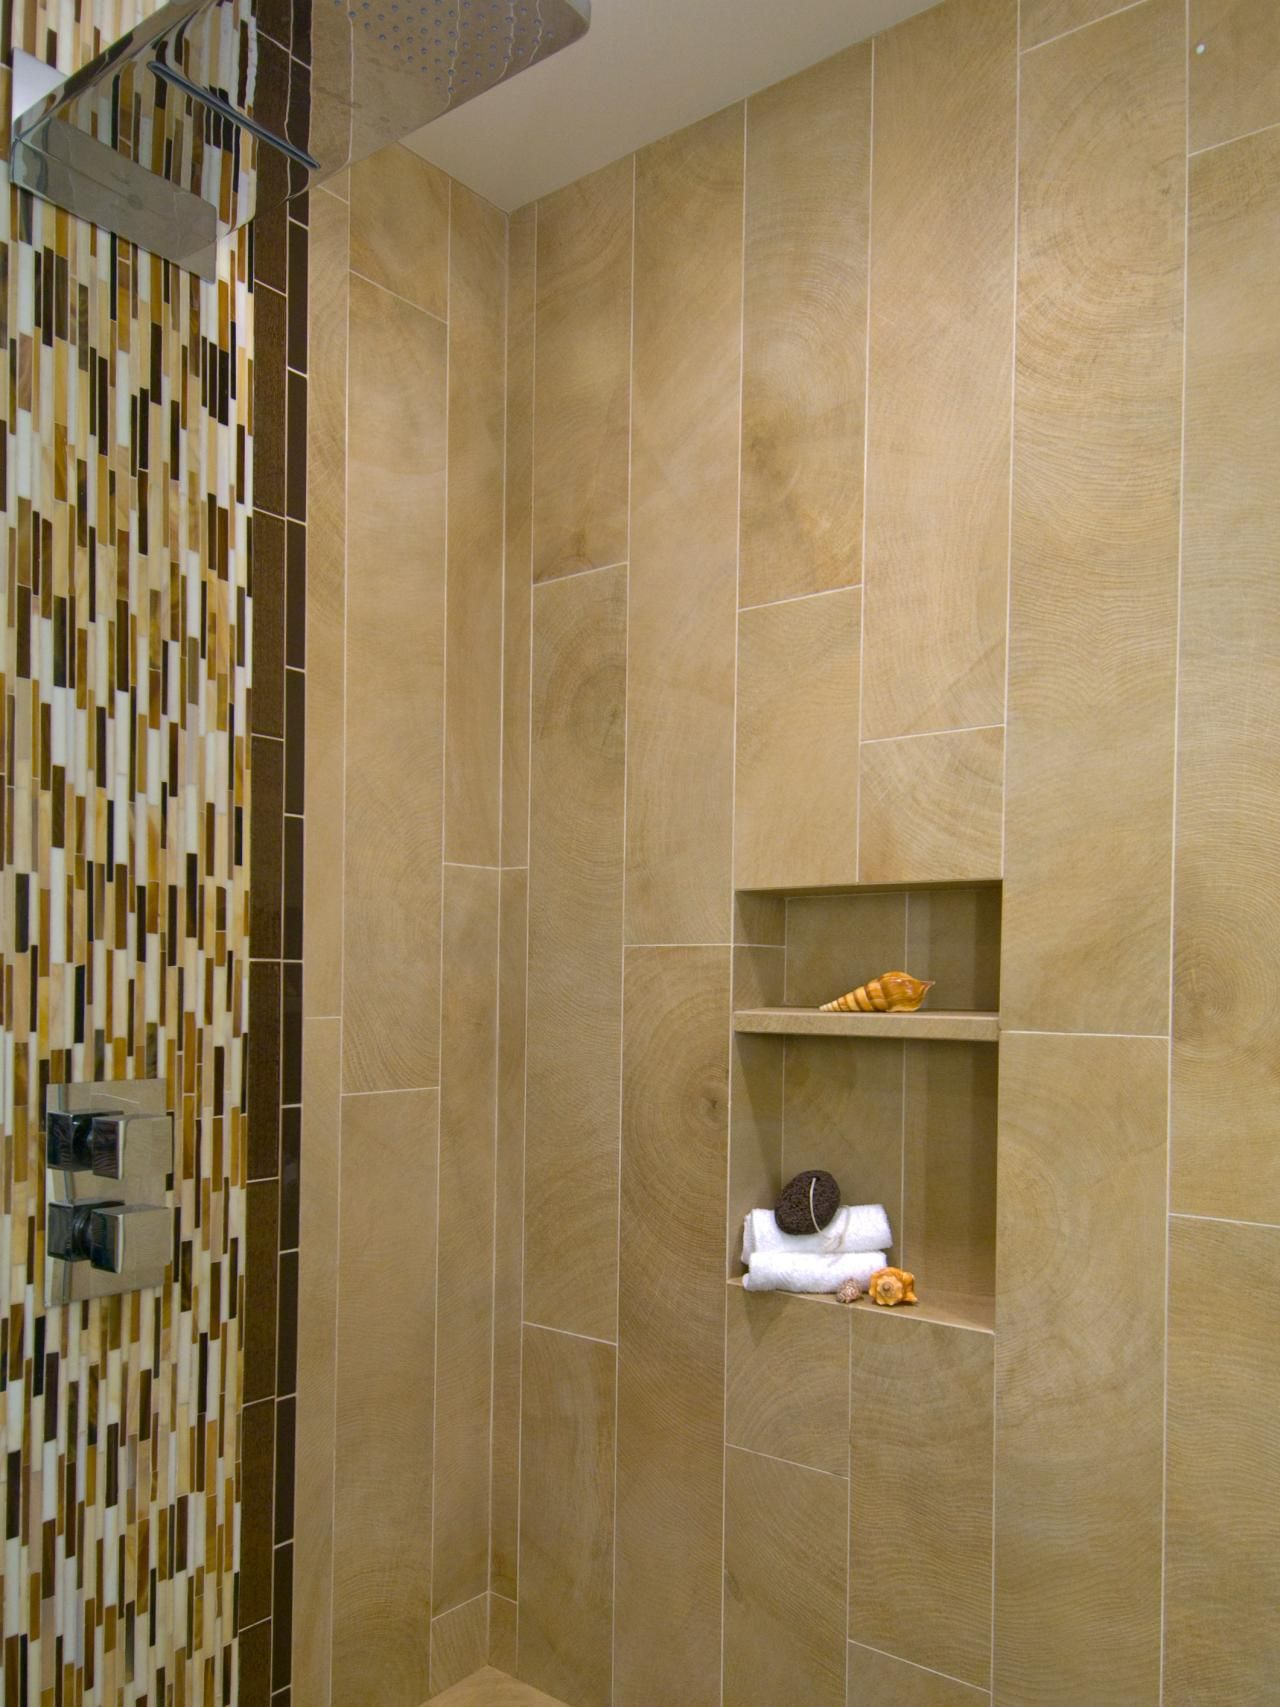 8x24 tile stacked vertical in shower - Google Search | Bathing ...